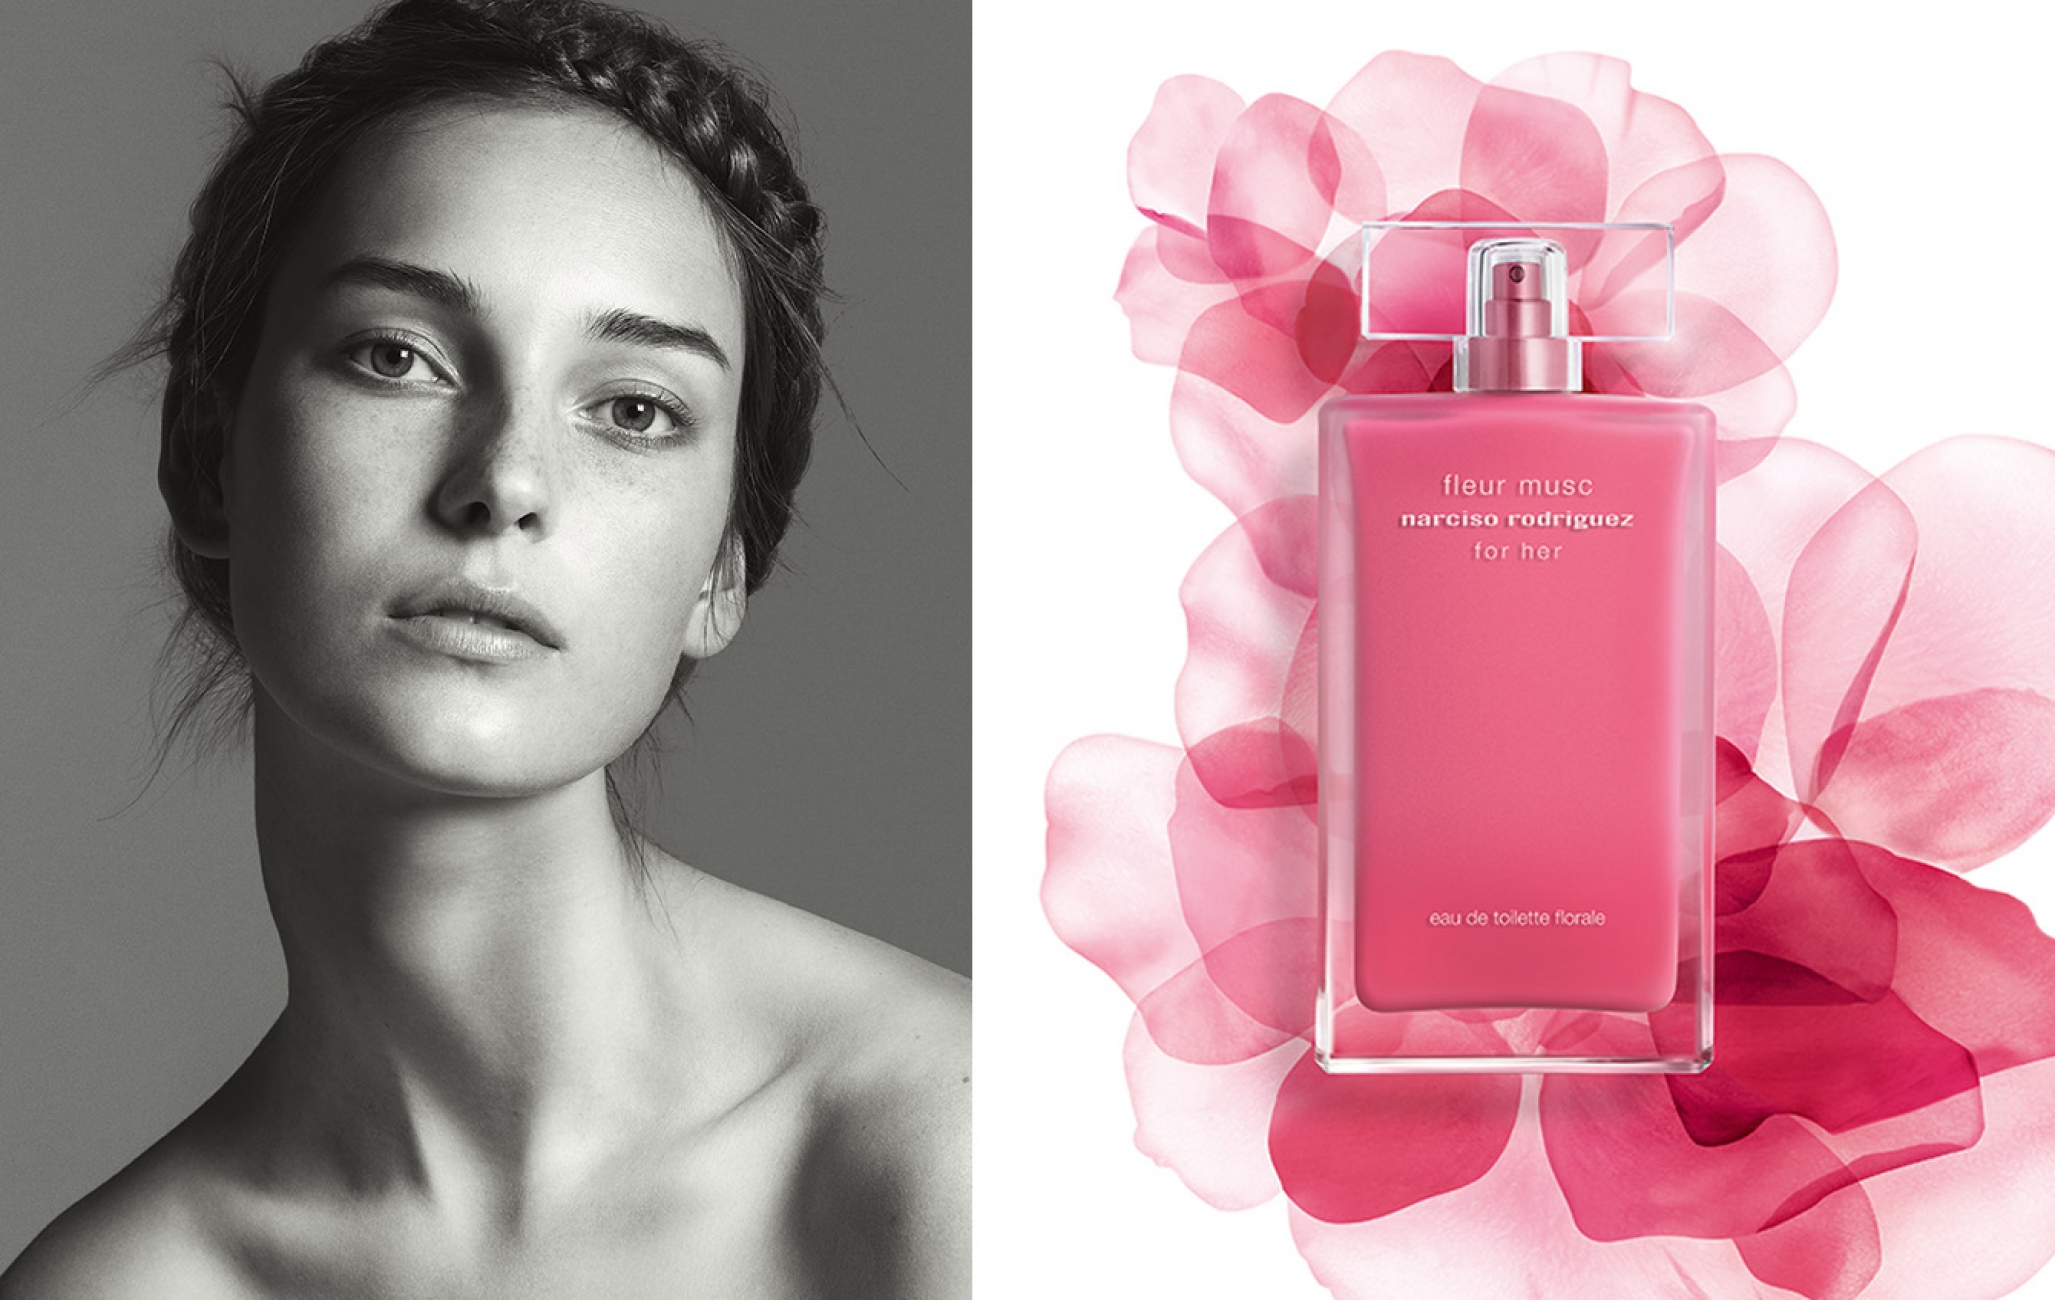 Julia for the new fleur musc florale by Narciso Rodriguez